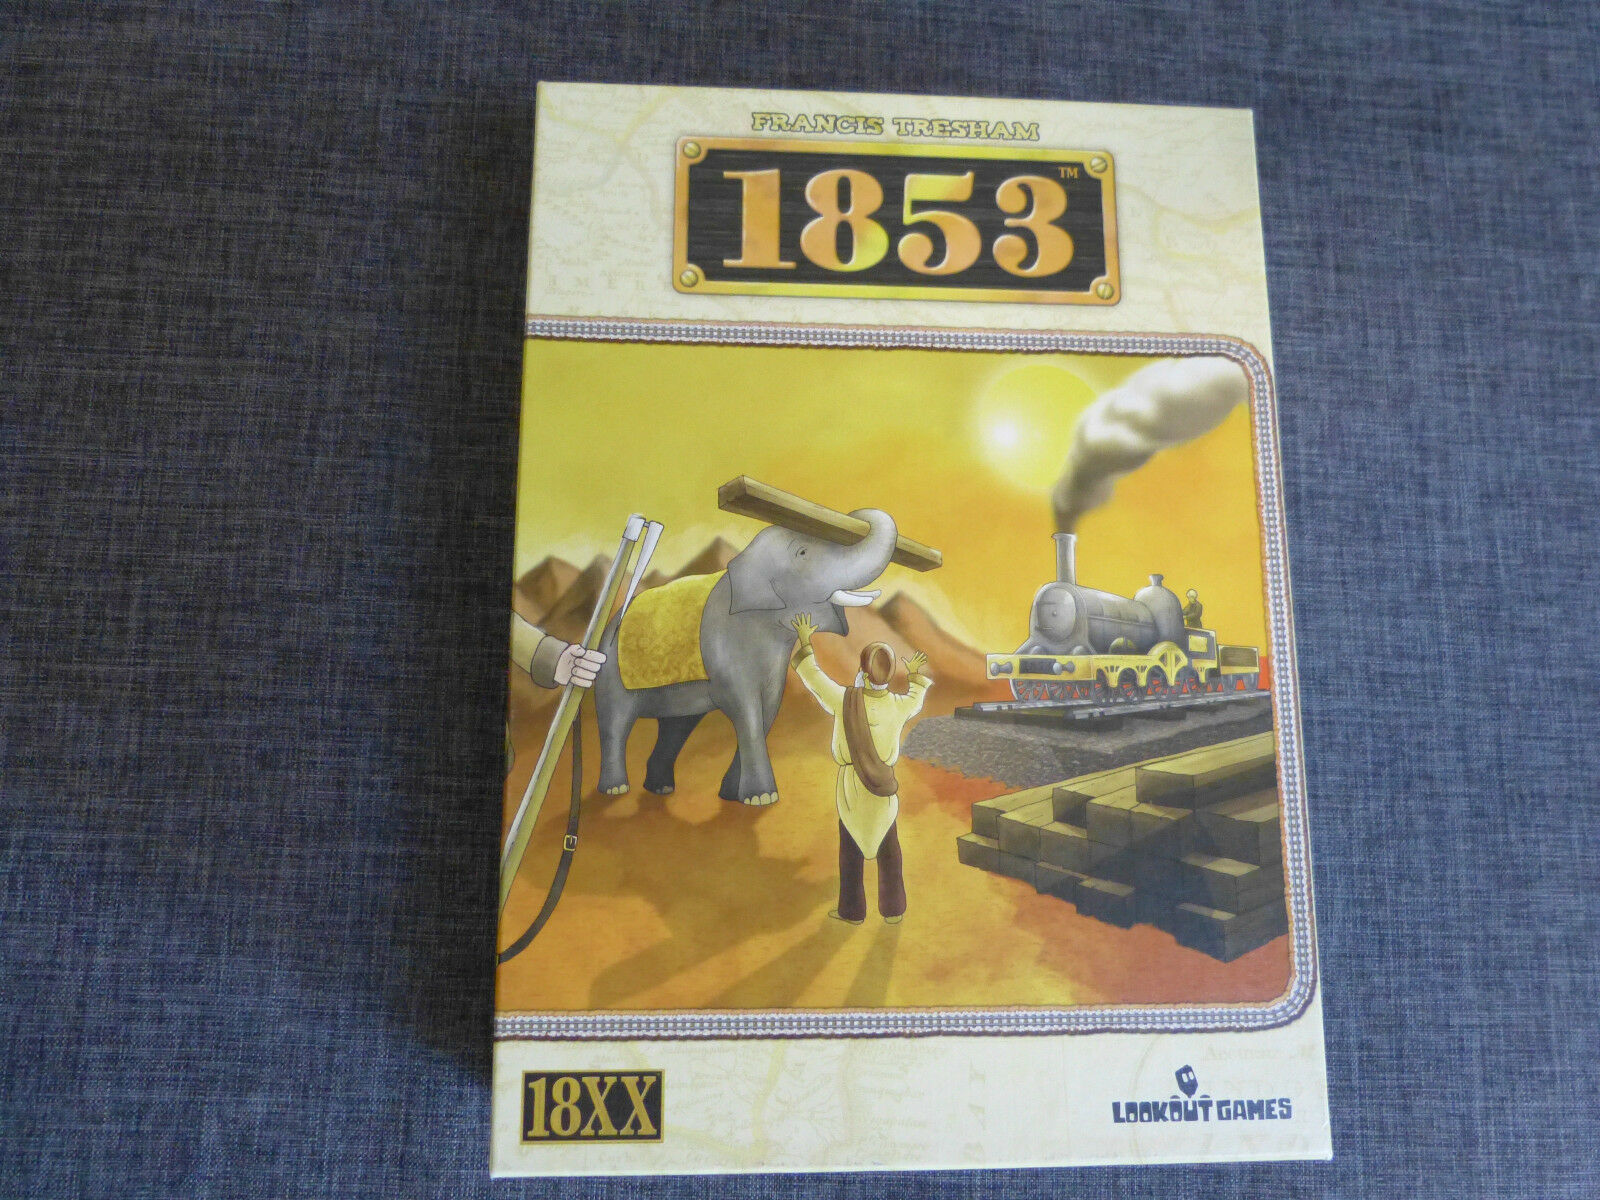 1853 Board Game Game Game - Francis Tresham - 18XX Train Game - Lookout Games fb06ca